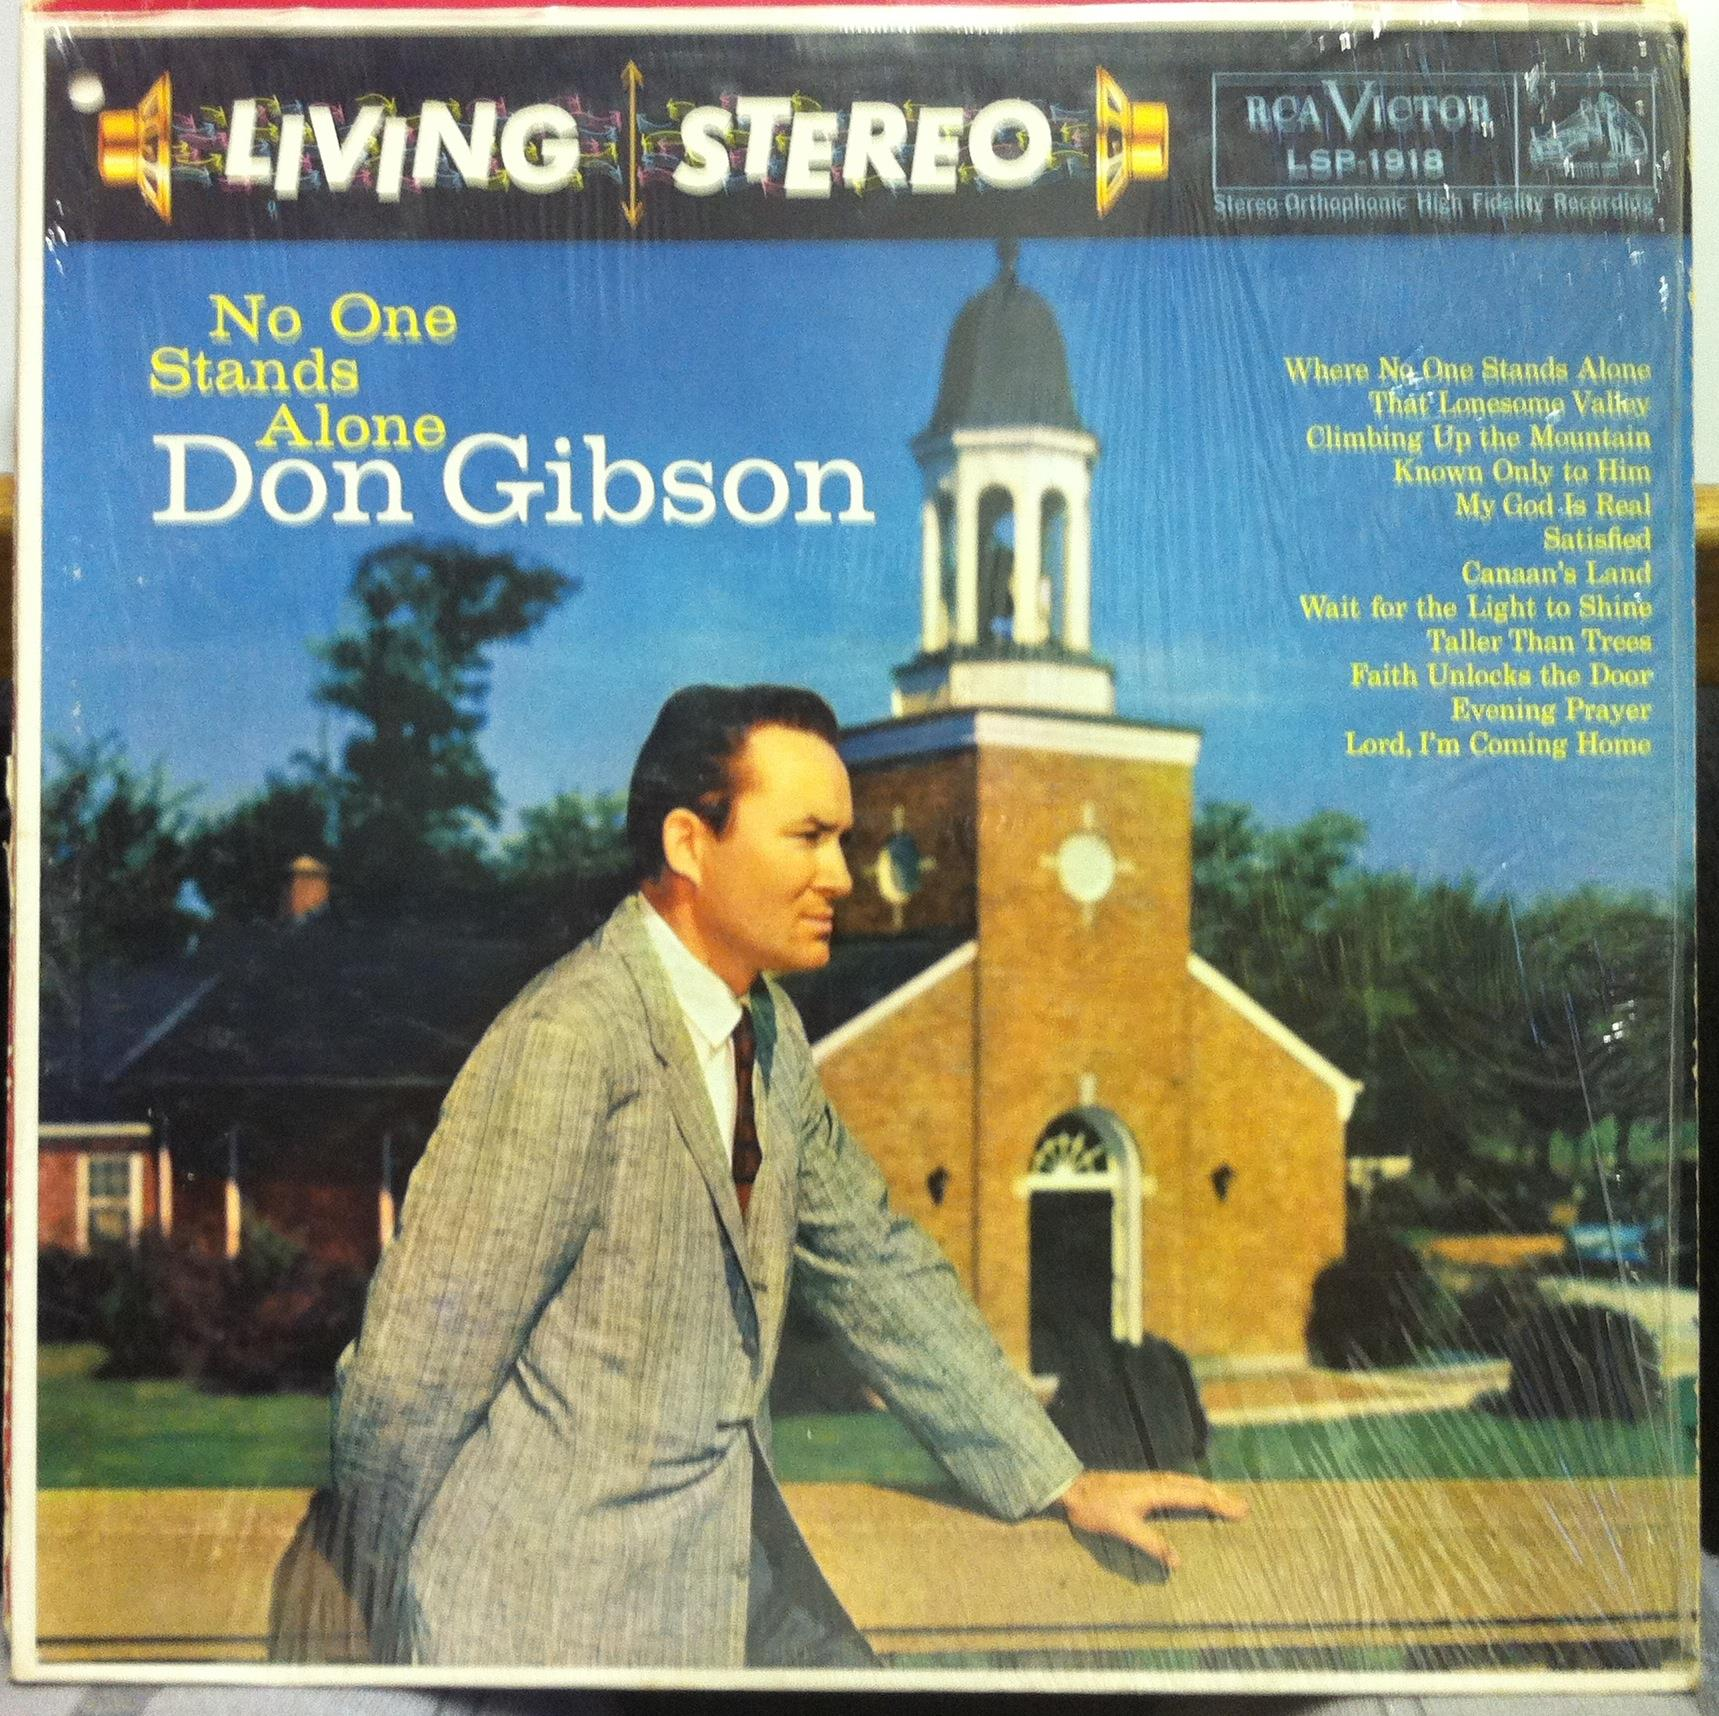 christian singles in gibson Gibson's debut album on the run was well received (also being re-released in 1990), rendering his first no 1 single in contemporary christian music on christian radio, entitled god loves a broken heart.